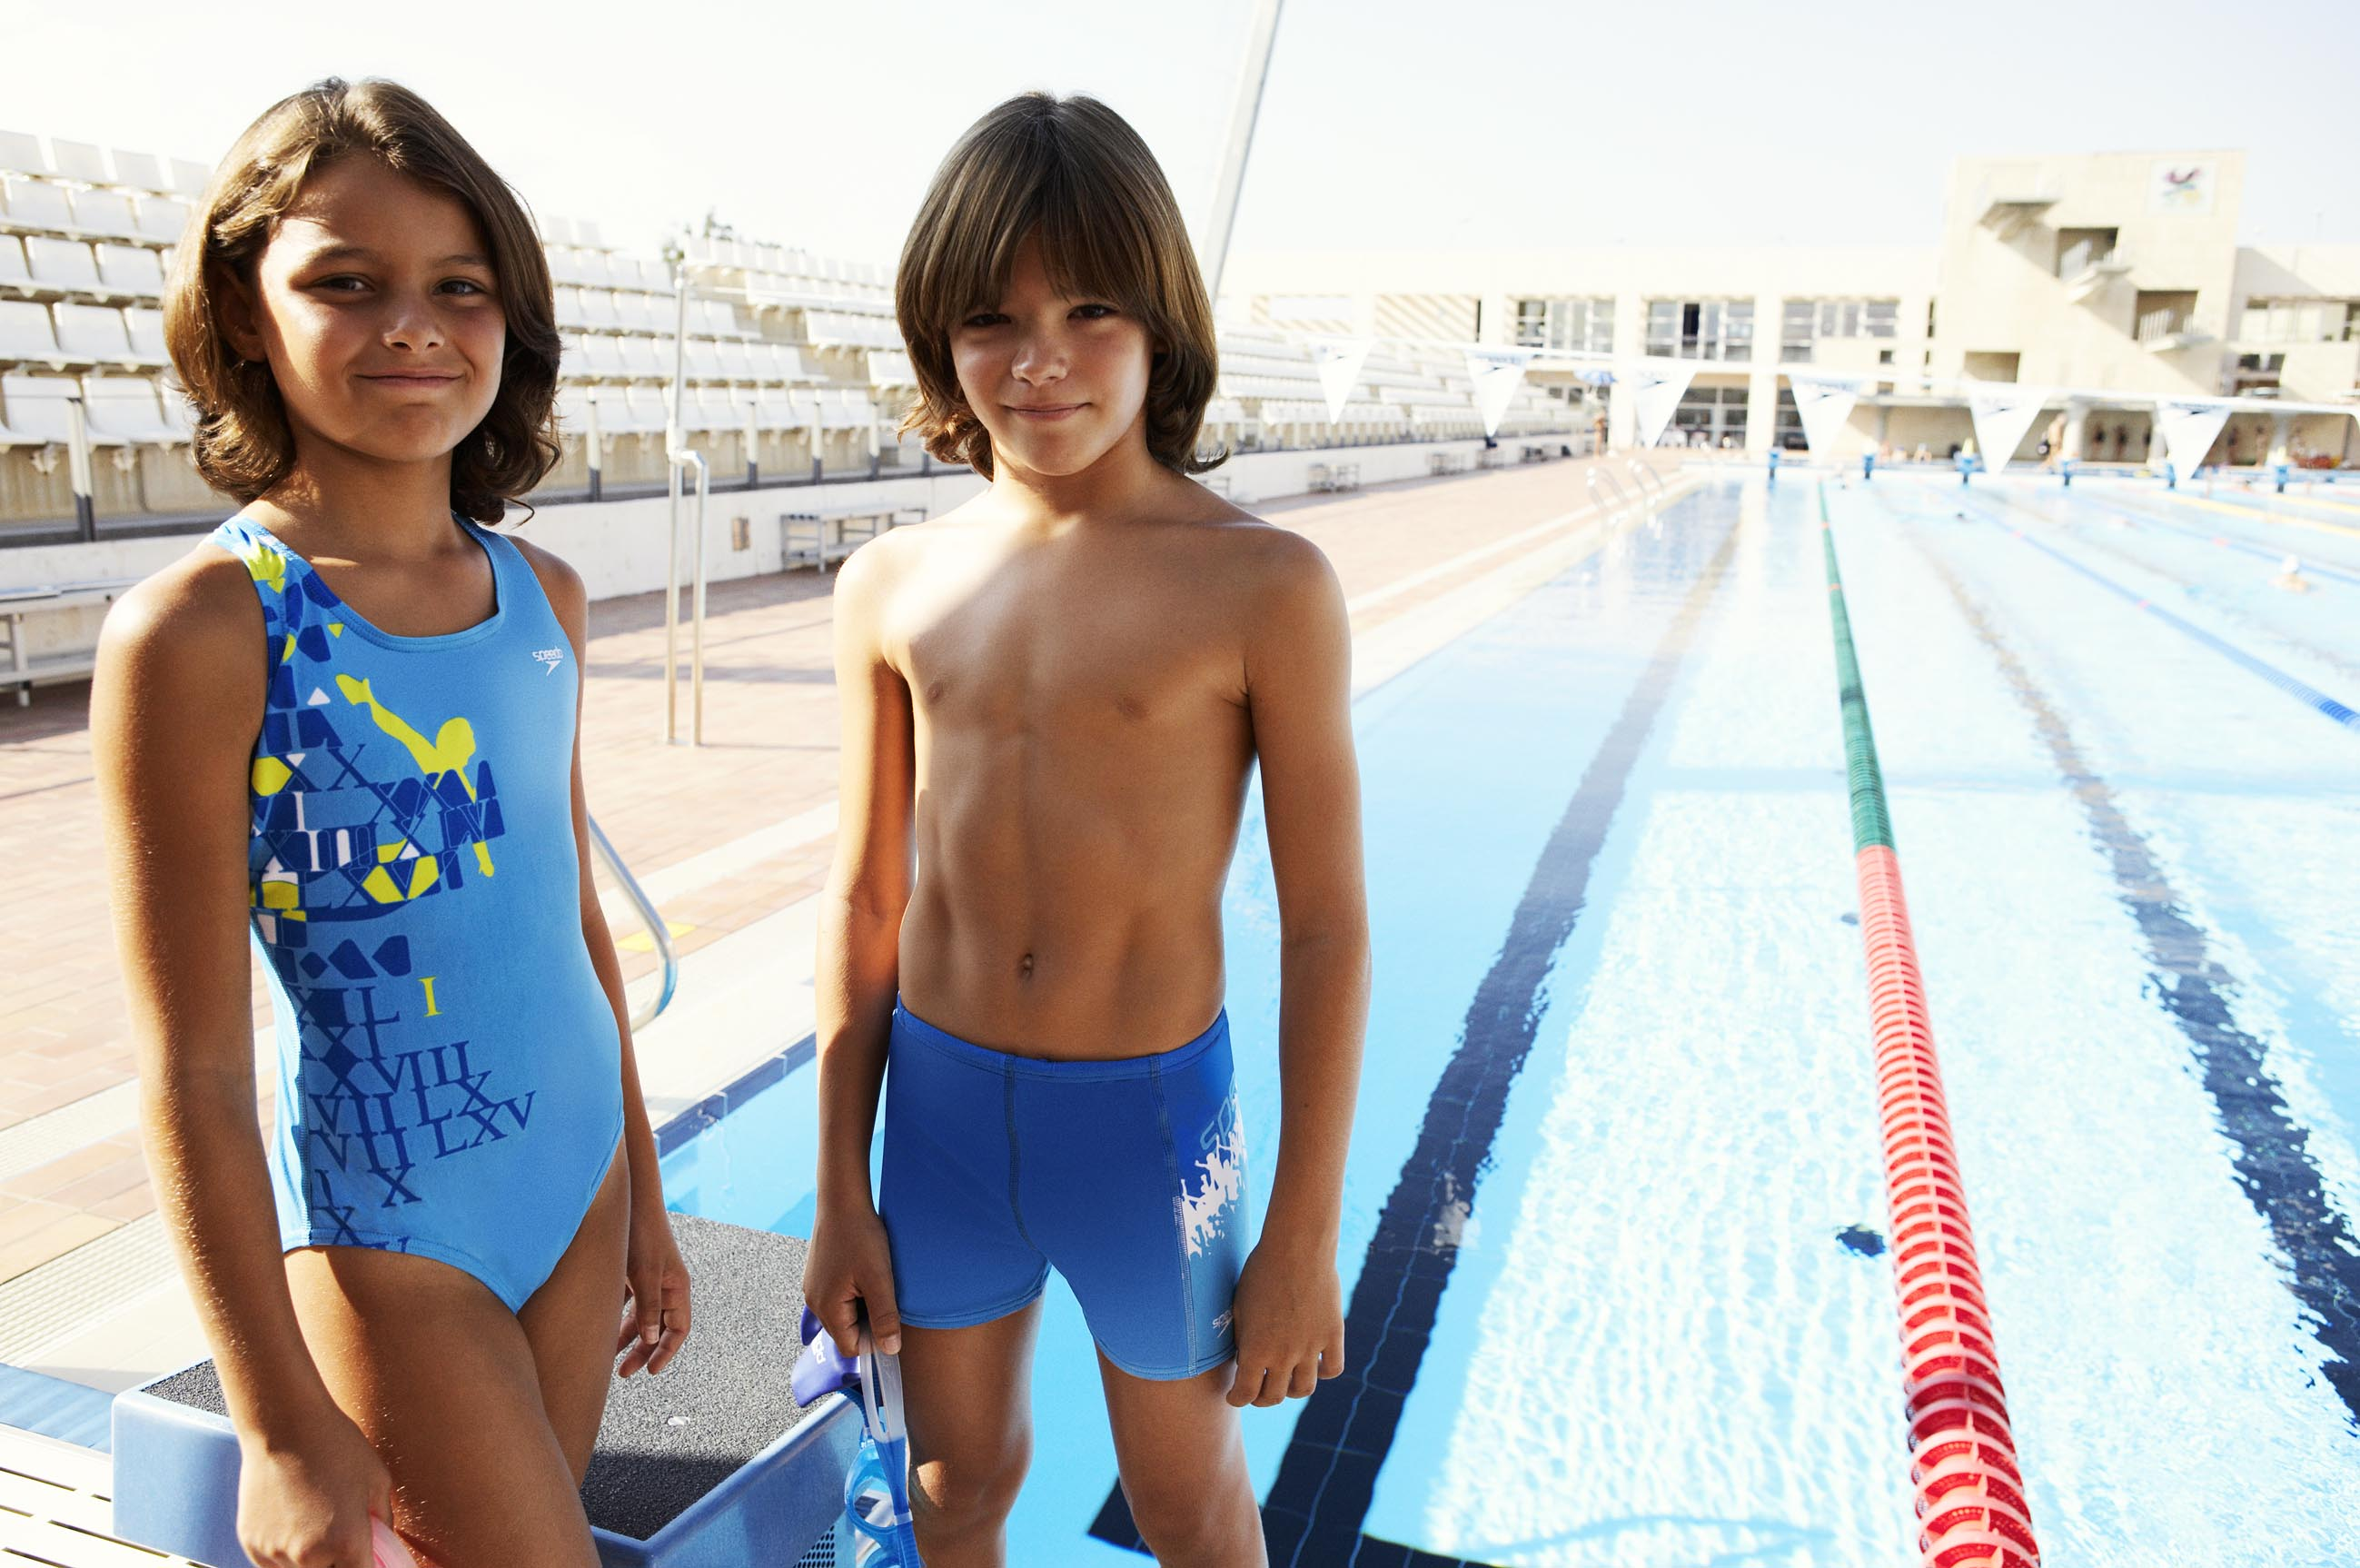 speedo public swimming pool rome - photo#32